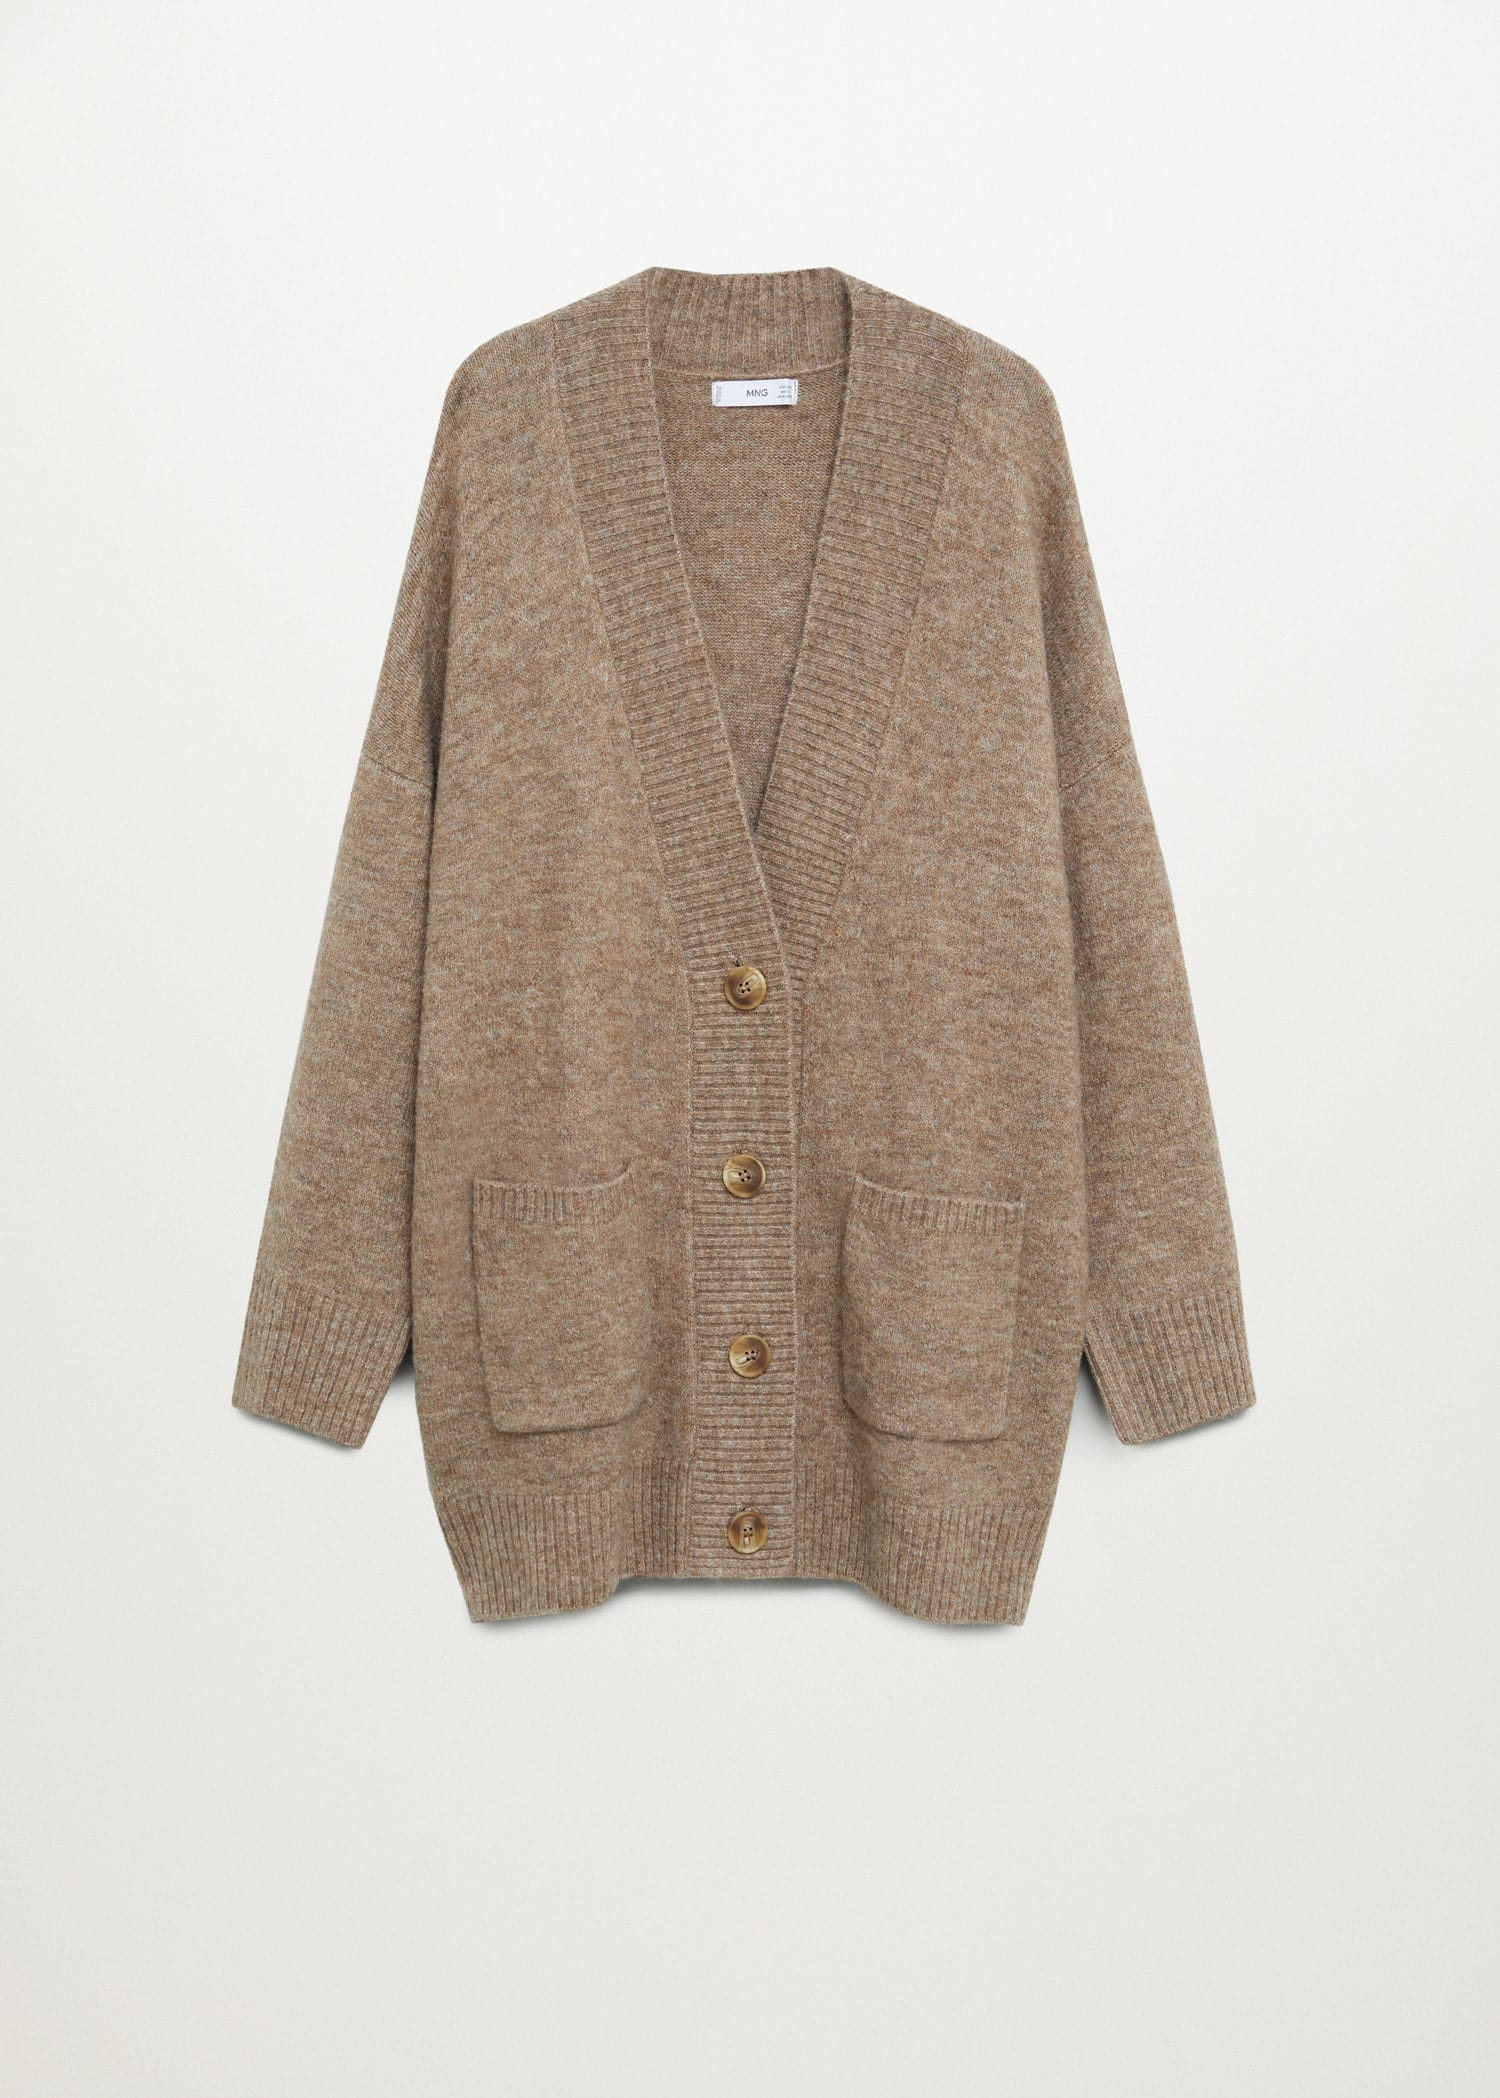 gestire Saltare nebbioso  Cardigans and sweaters for Women 2020   Mango USA